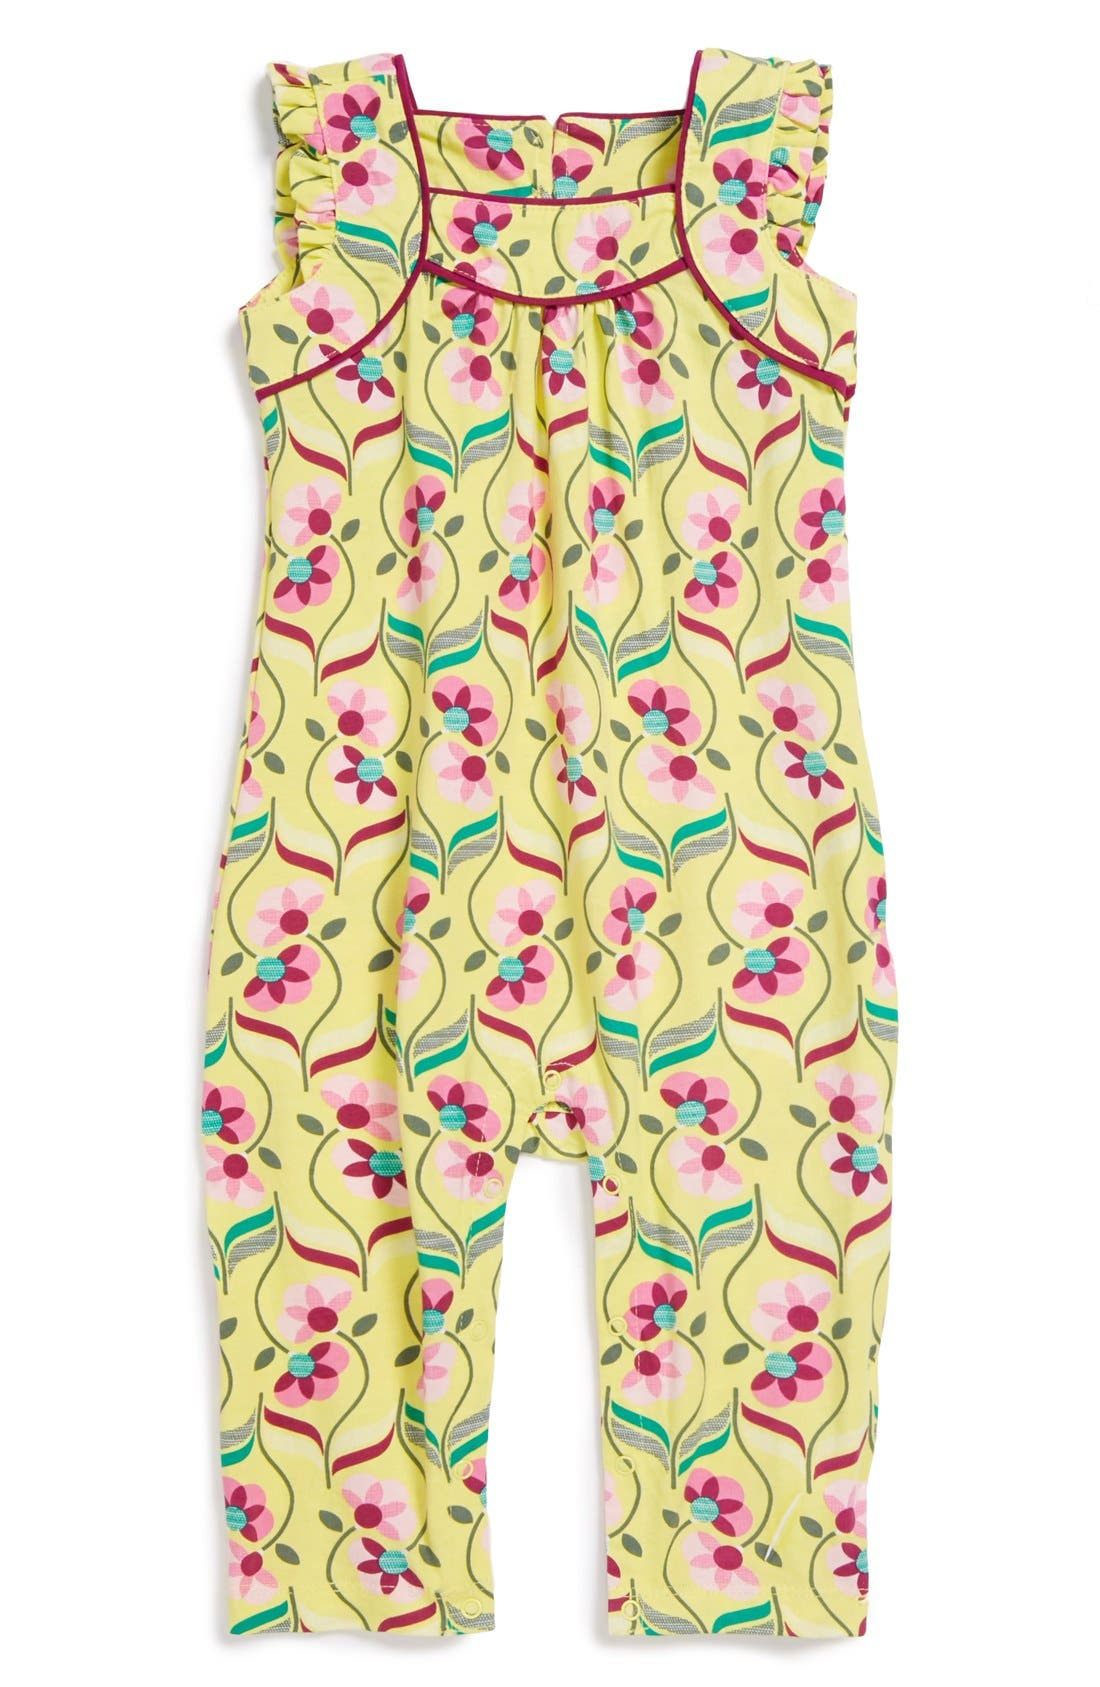 Alternate Image 1 Selected - Tea Collection 'Souq' Floral Print Romper (Baby Girls)